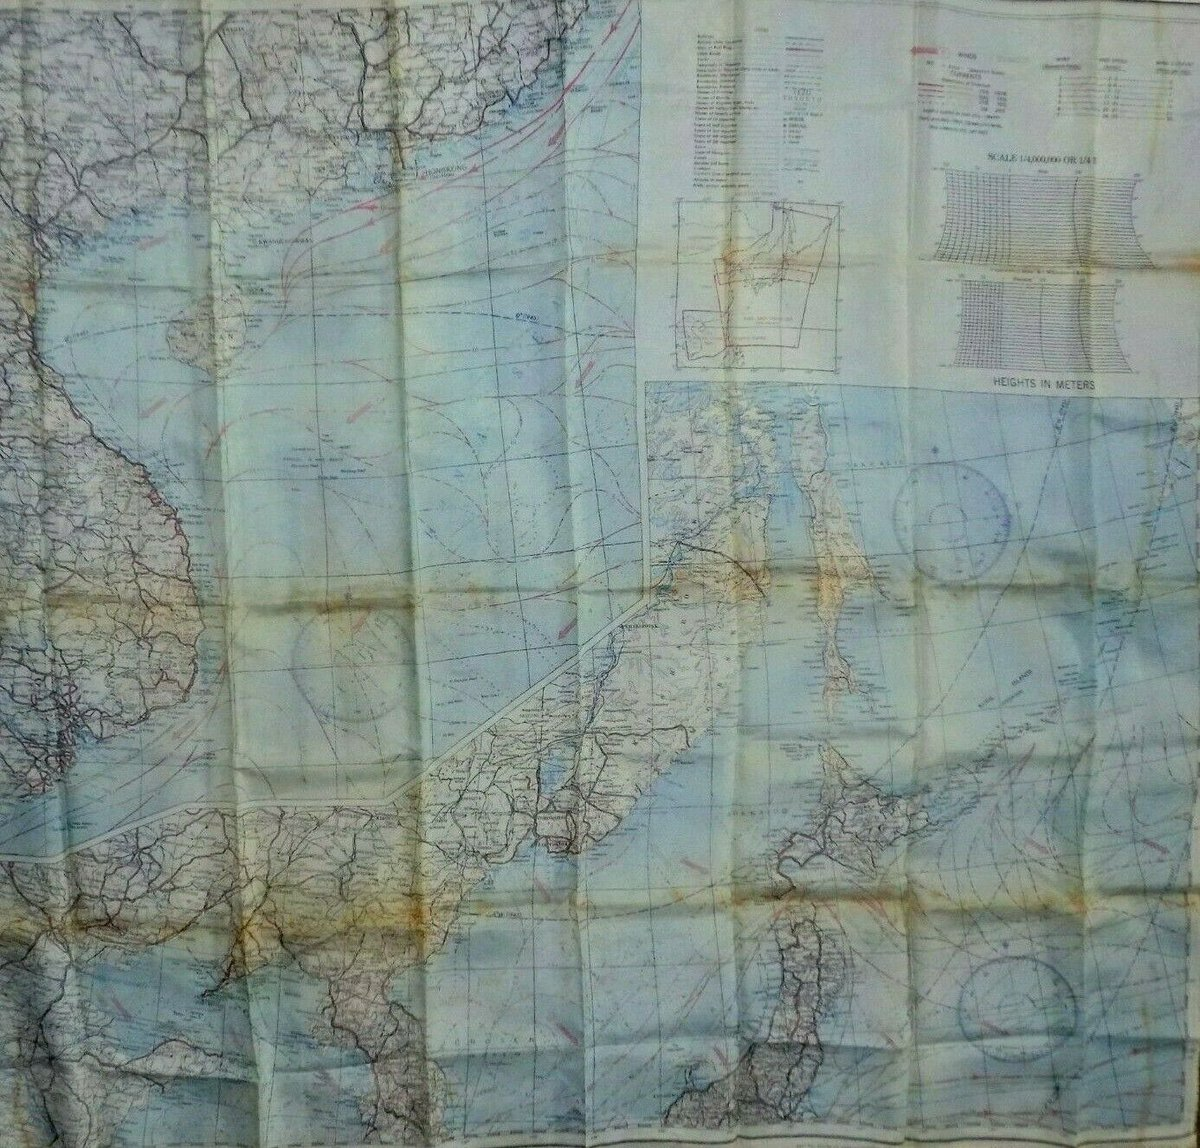 #Antiques #Militaria #Collectables #Jewellery #Auction - #Vintage WWII USAF Issued Pilot Secret Cloth Escape Map Japan + S. China Sea 1945 https://www.ebay.co.uk/itm/123845803424…